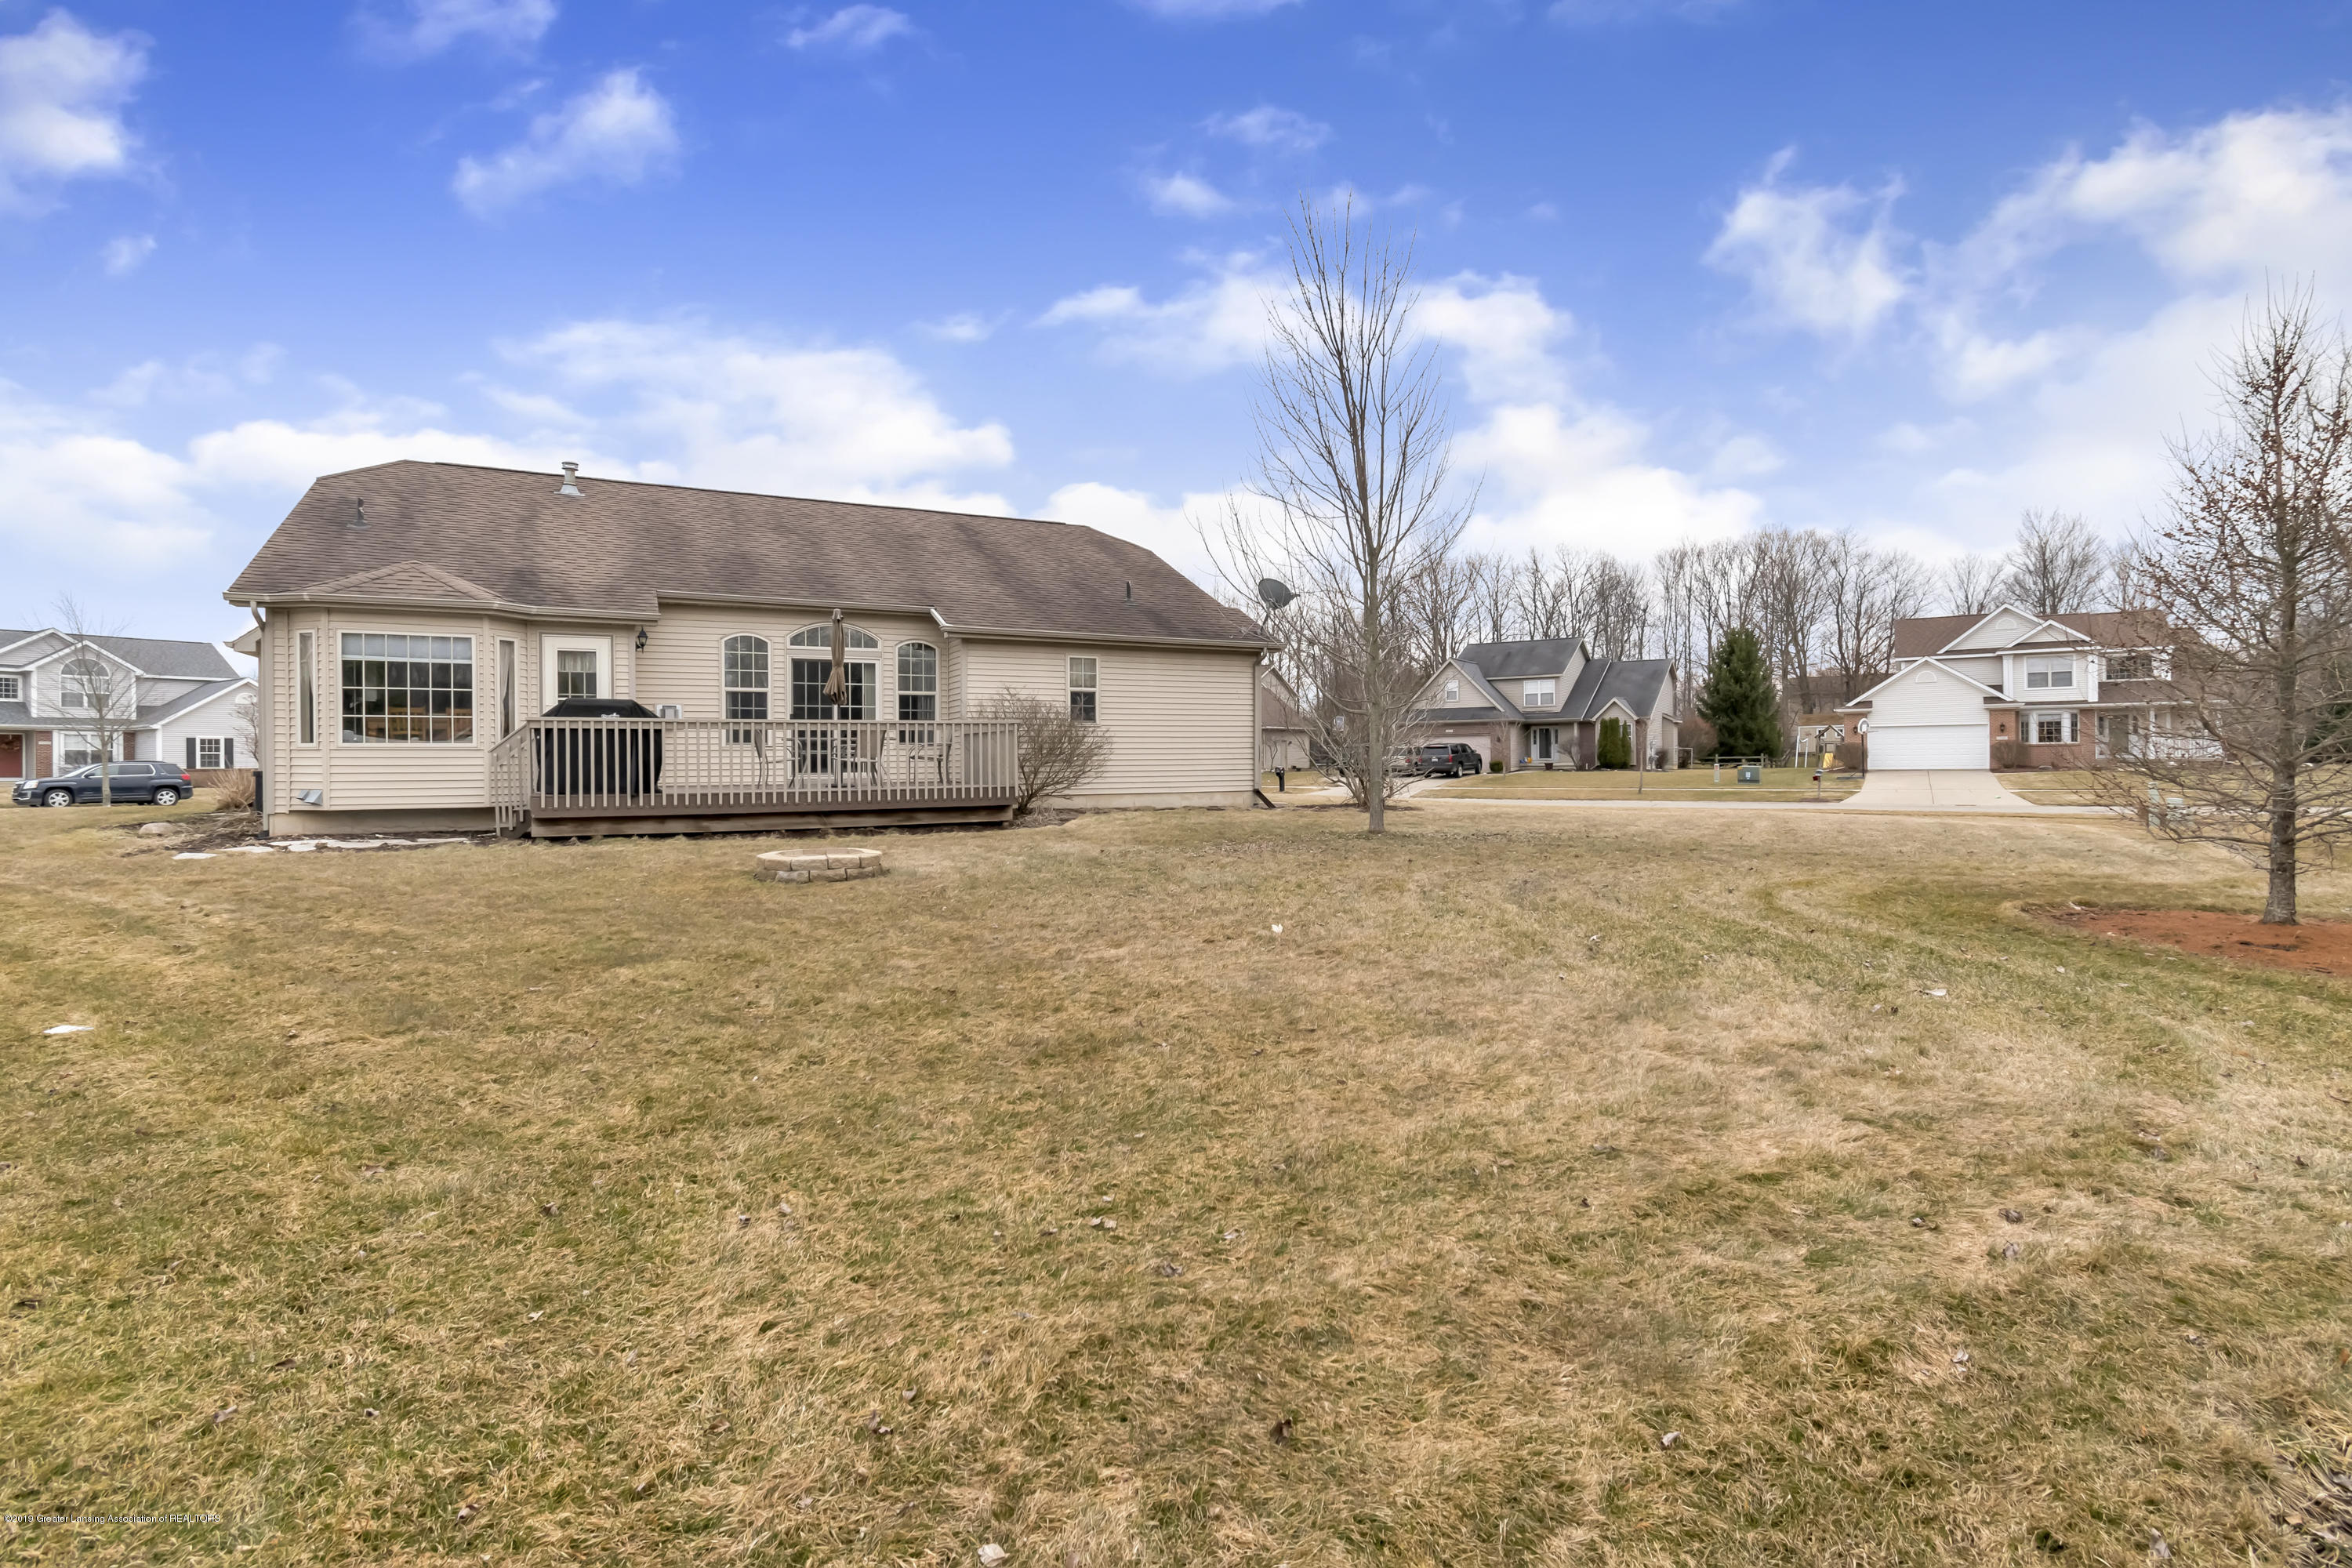 11553 Gold Fields Dr - 11553-Gold-Fields-Dr-Grand-Ledge-MI-wind - 35